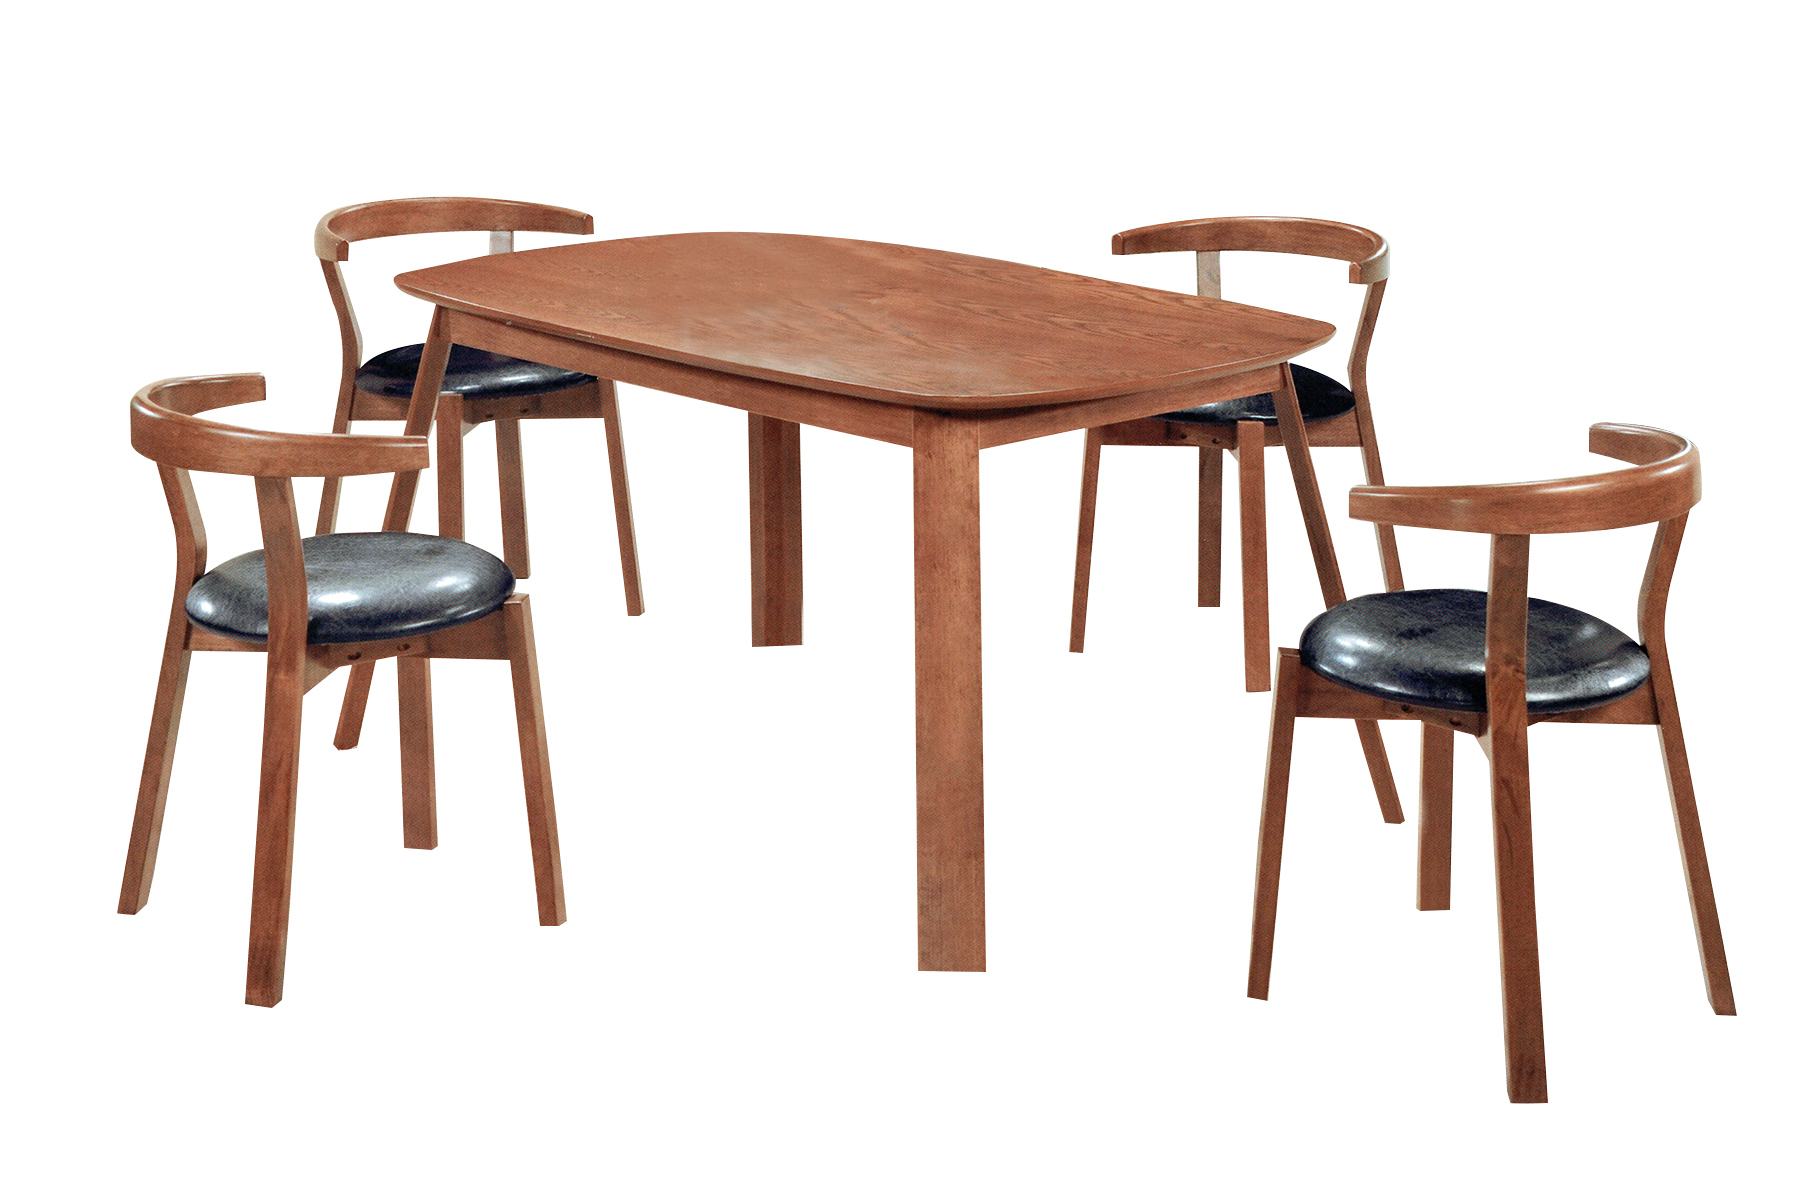 dining set nikkei T+4 chairs.jpg